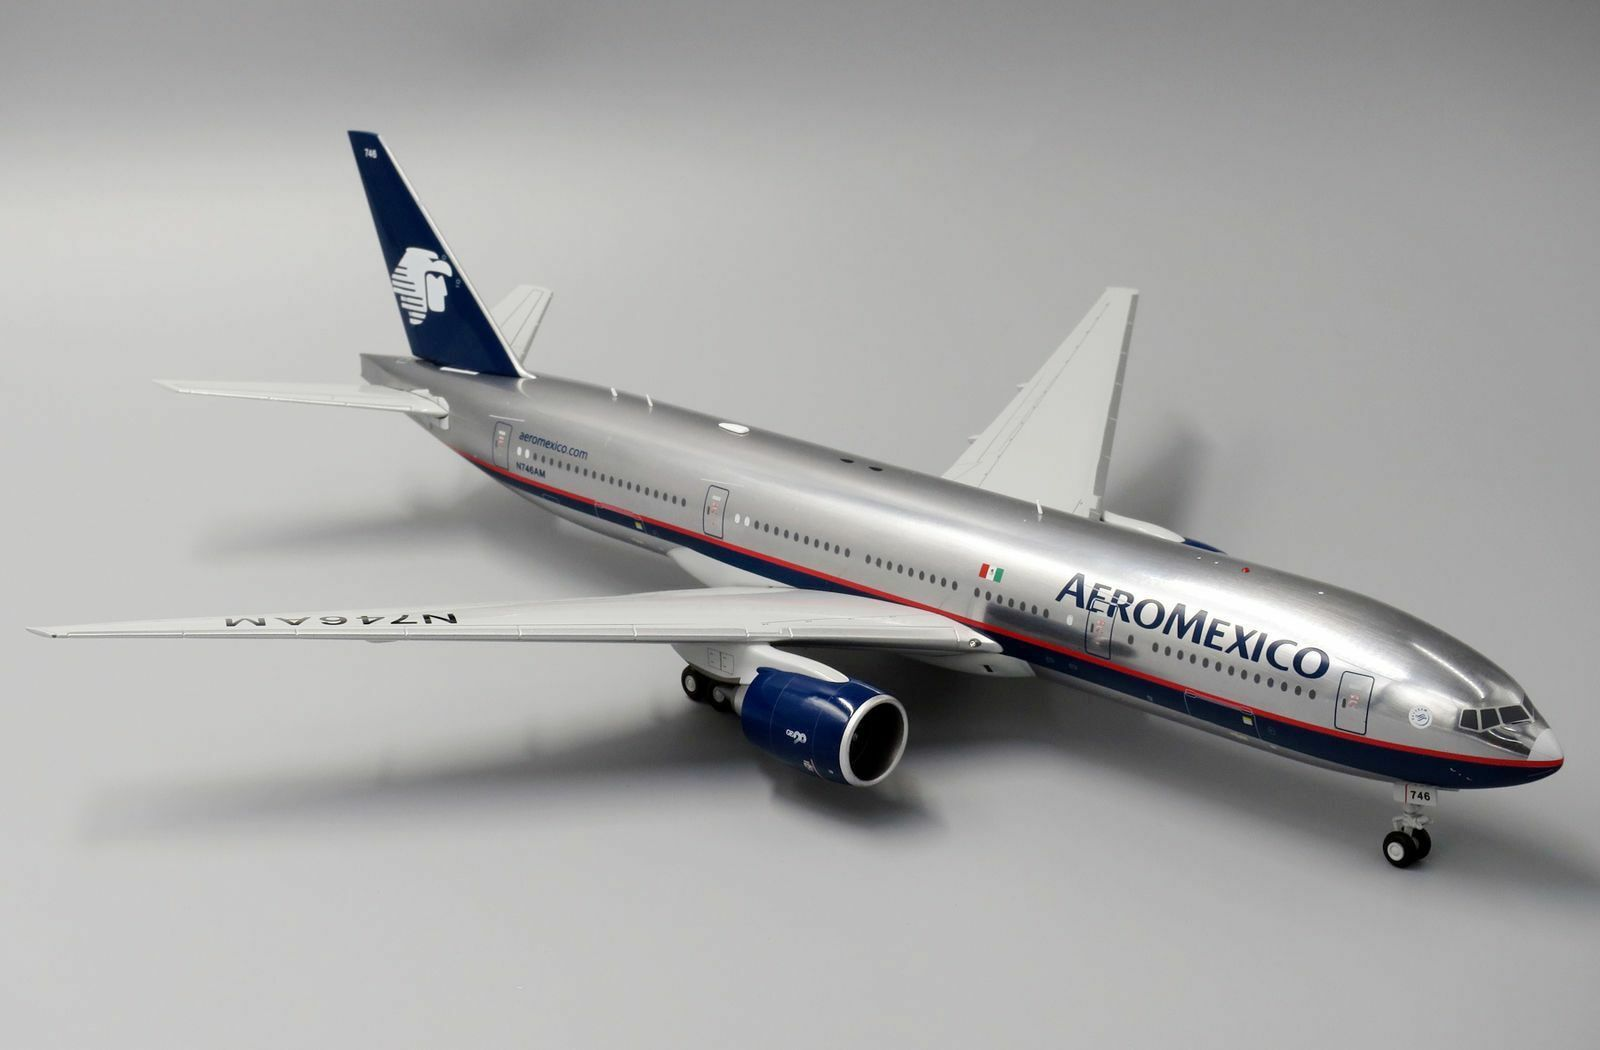 Jc Wings LH2083 1/200 Aeromexico Boeing 777-200er N746am con Supporto